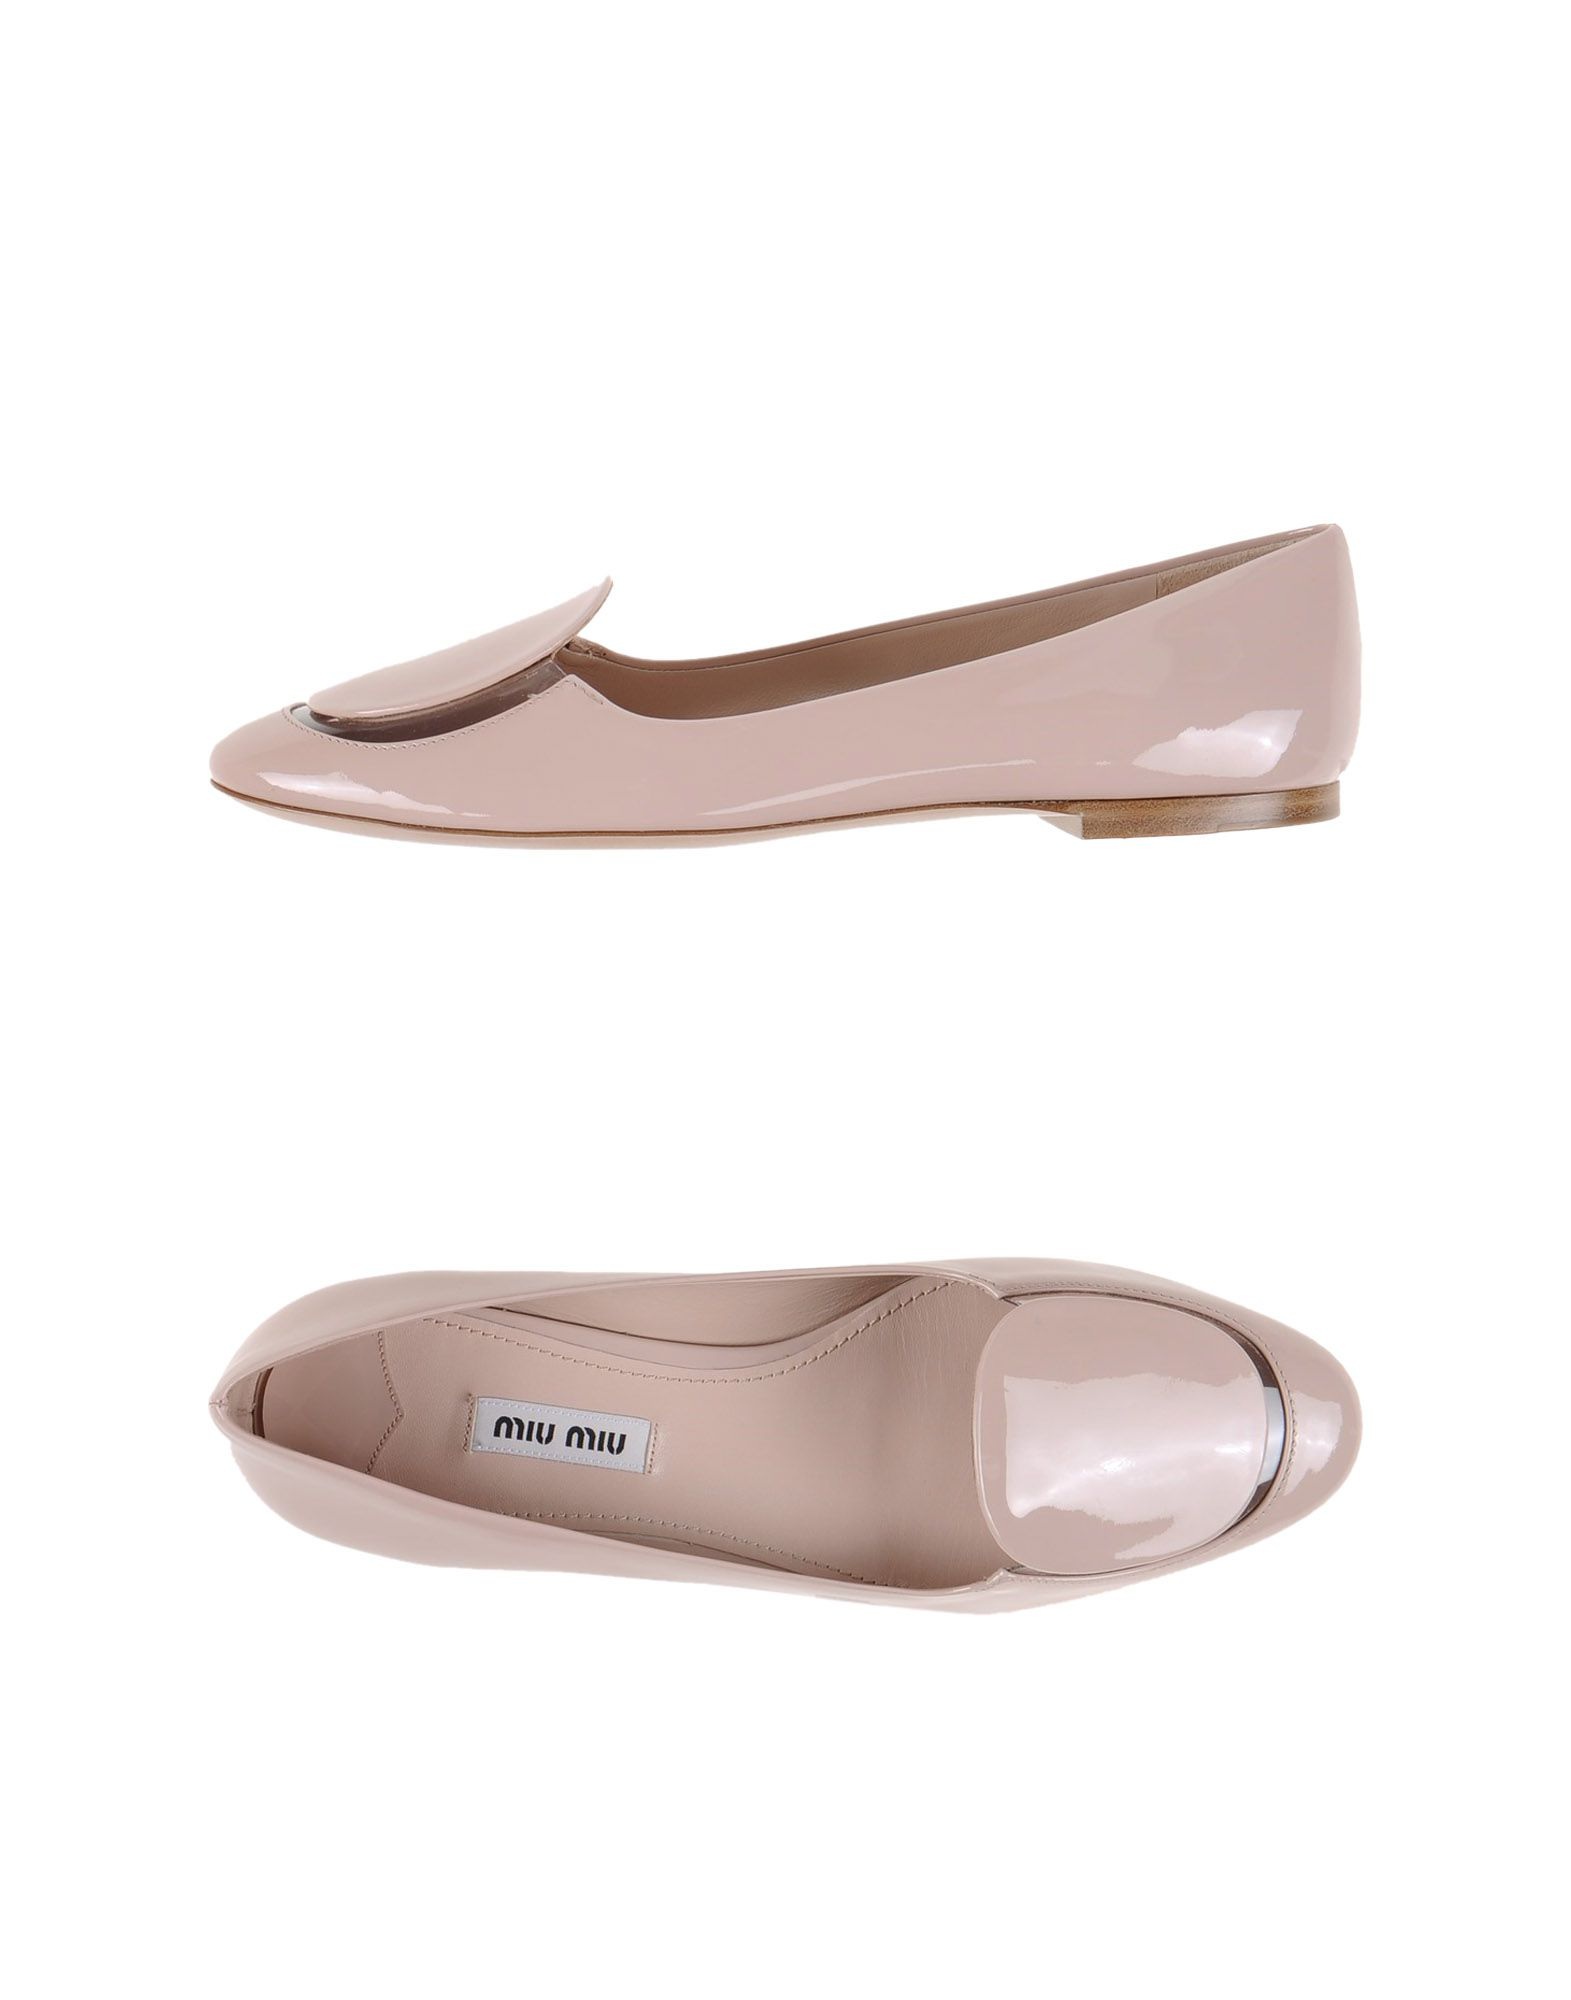 lyst miu miu leather ballet flats in pink. Black Bedroom Furniture Sets. Home Design Ideas